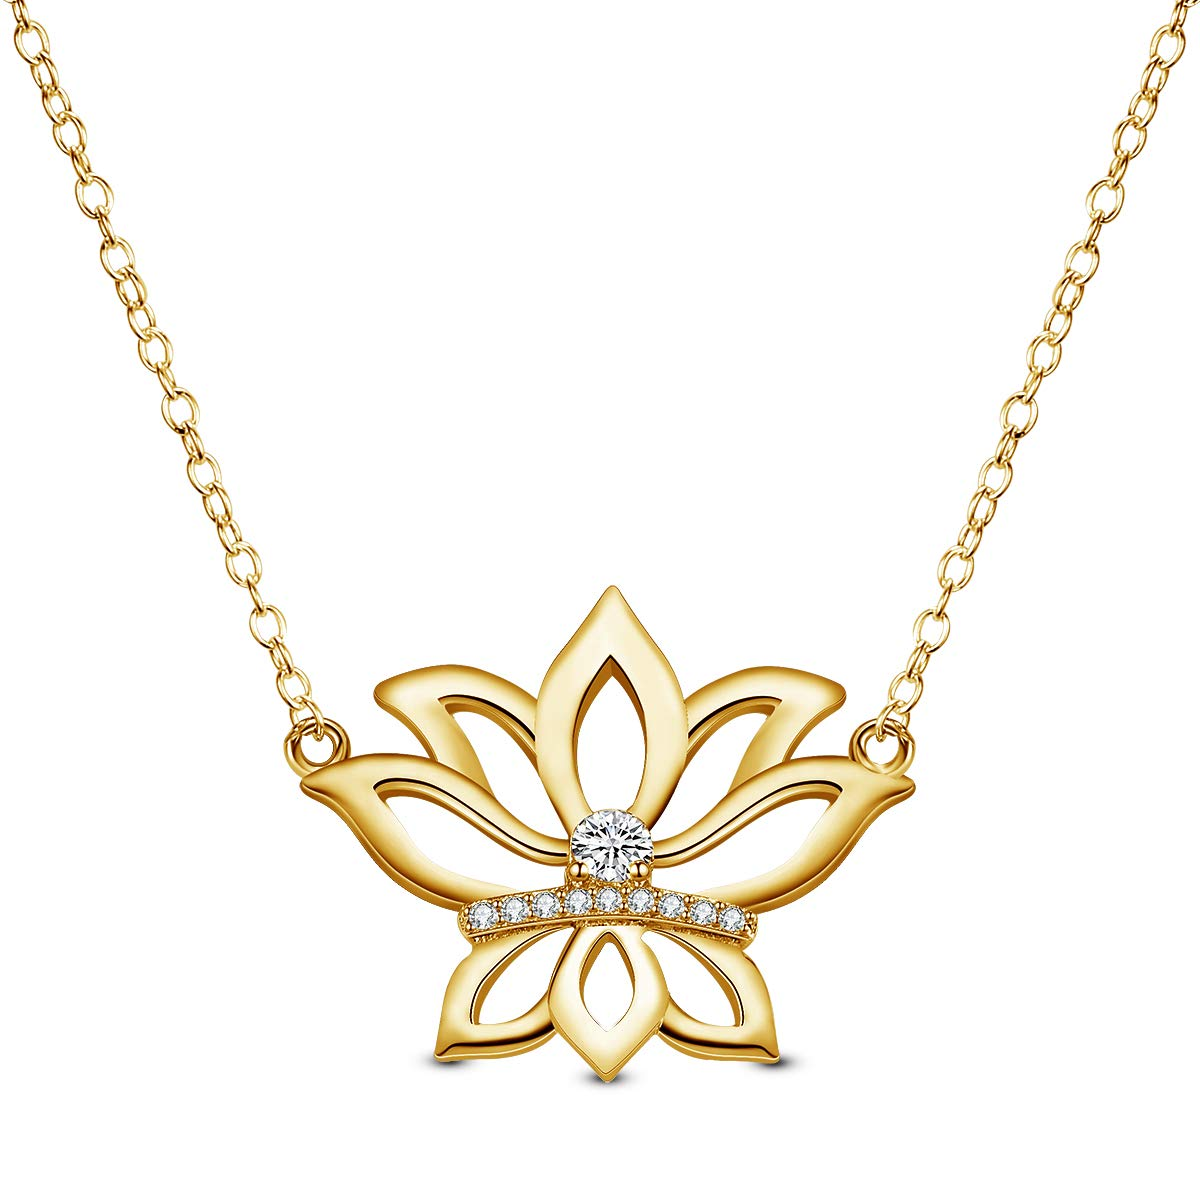 Lotus Flower Pendnat Necklace